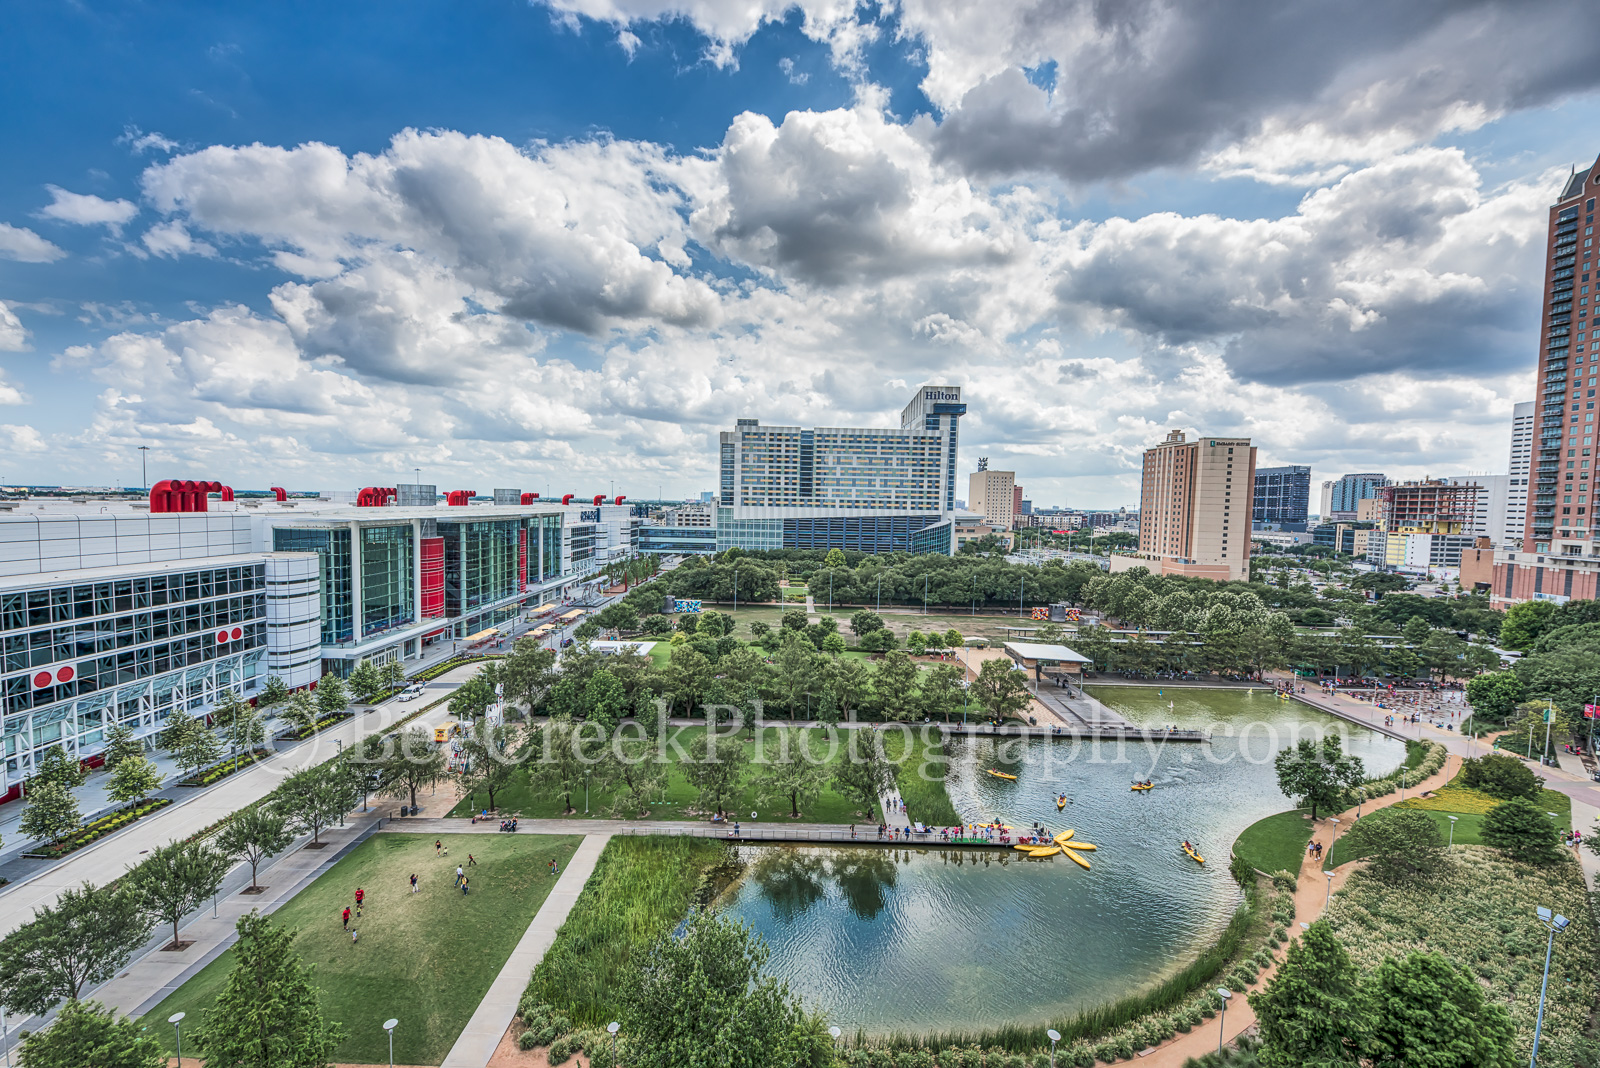 Houston, Discovery Green Park, George Brown Convention Center, water fountain, spray fountain, Kinder lake, Avenida Plaza, high rise condos, hotels, downtown, city, cityscape, people,, photo